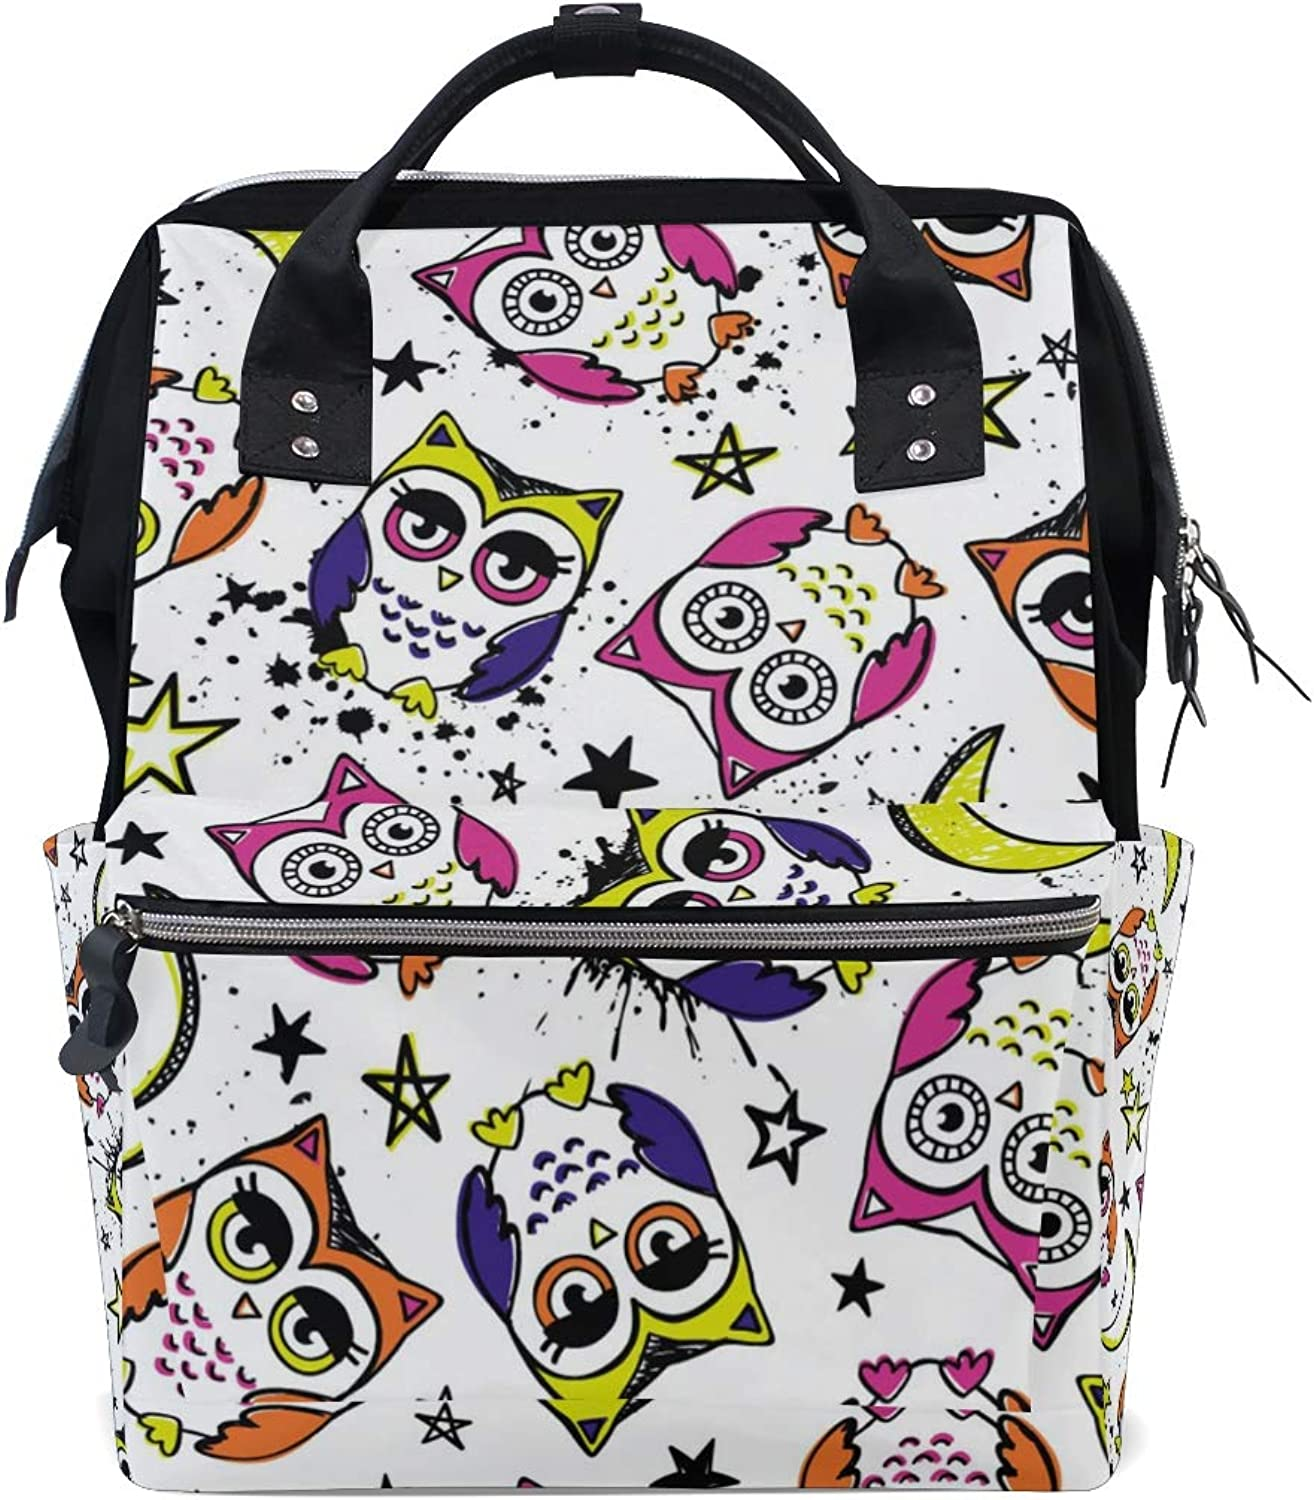 ColourLife Diaper bag Backpack Doodle Owls Stars Tote Bag Casual Daypack Multifunctional Nappy Bags